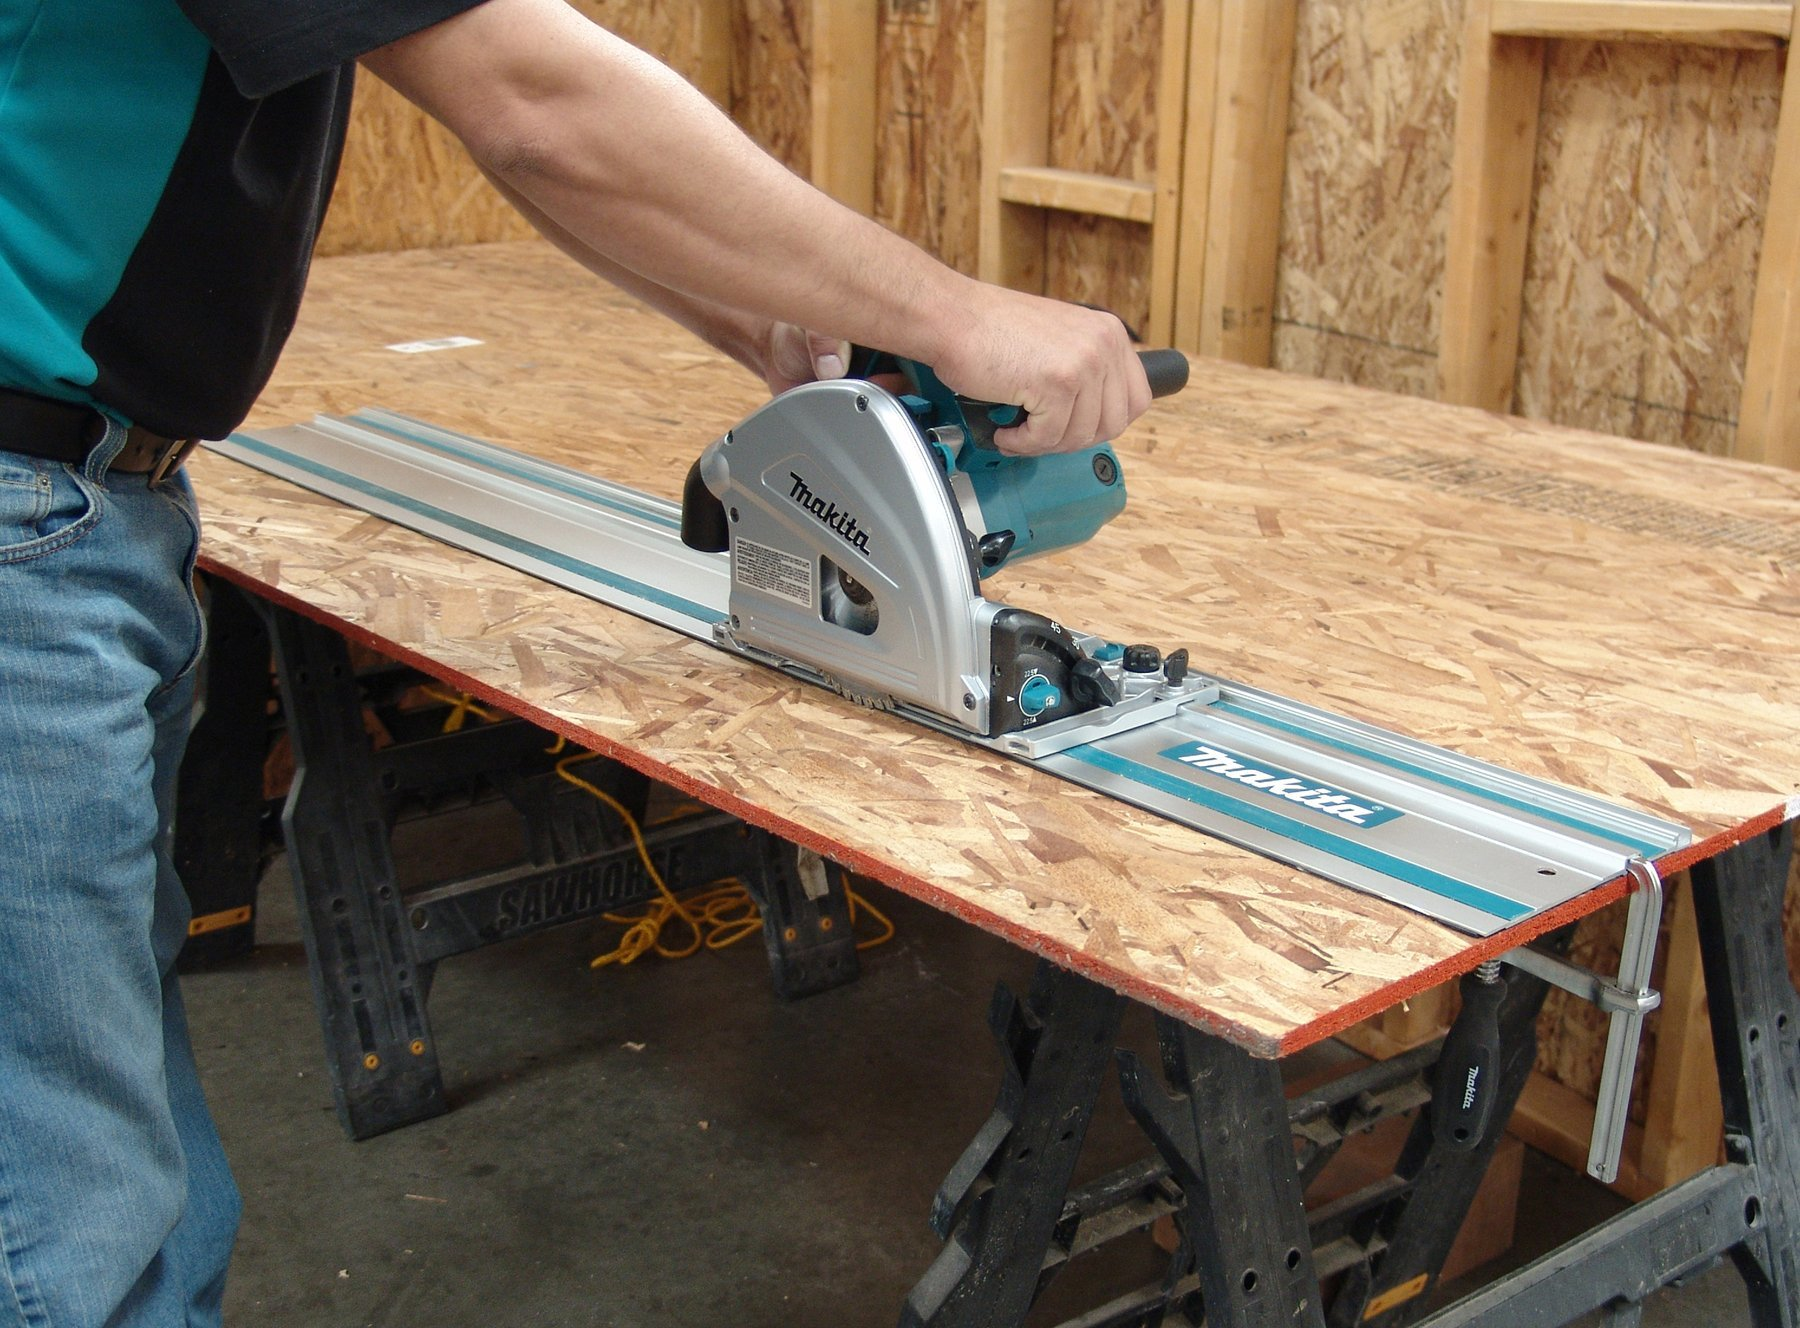 makita sp6000j1 6 1 2 inch plunge circular saw with guide rail. Black Bedroom Furniture Sets. Home Design Ideas